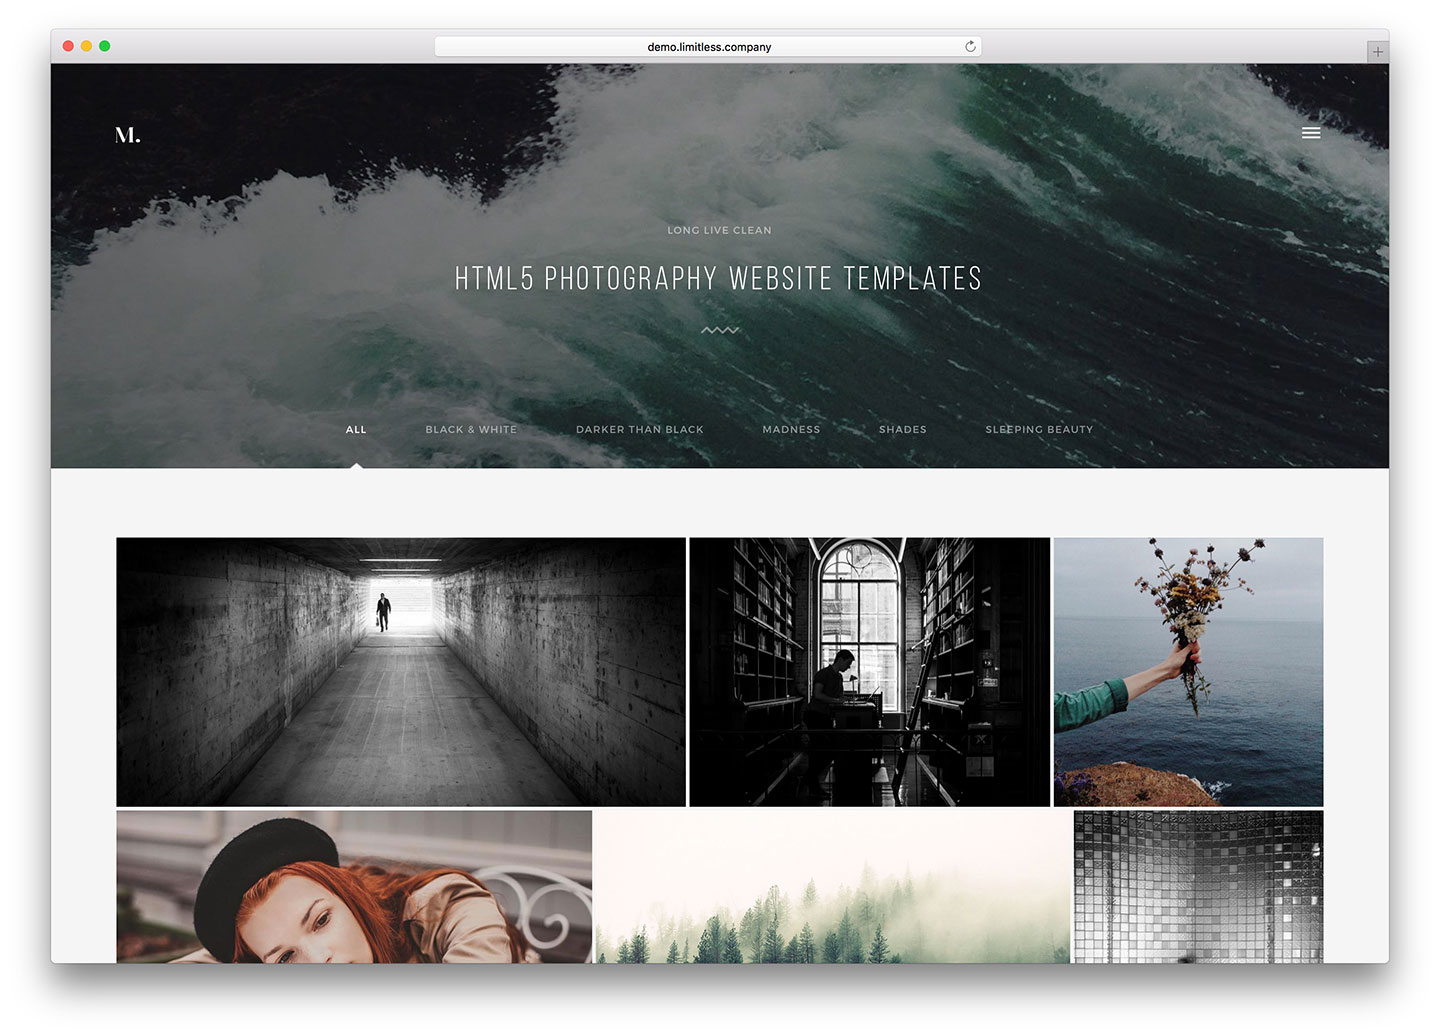 Top 22 HTML5 Photography Website Templates 2018 - Colorlib